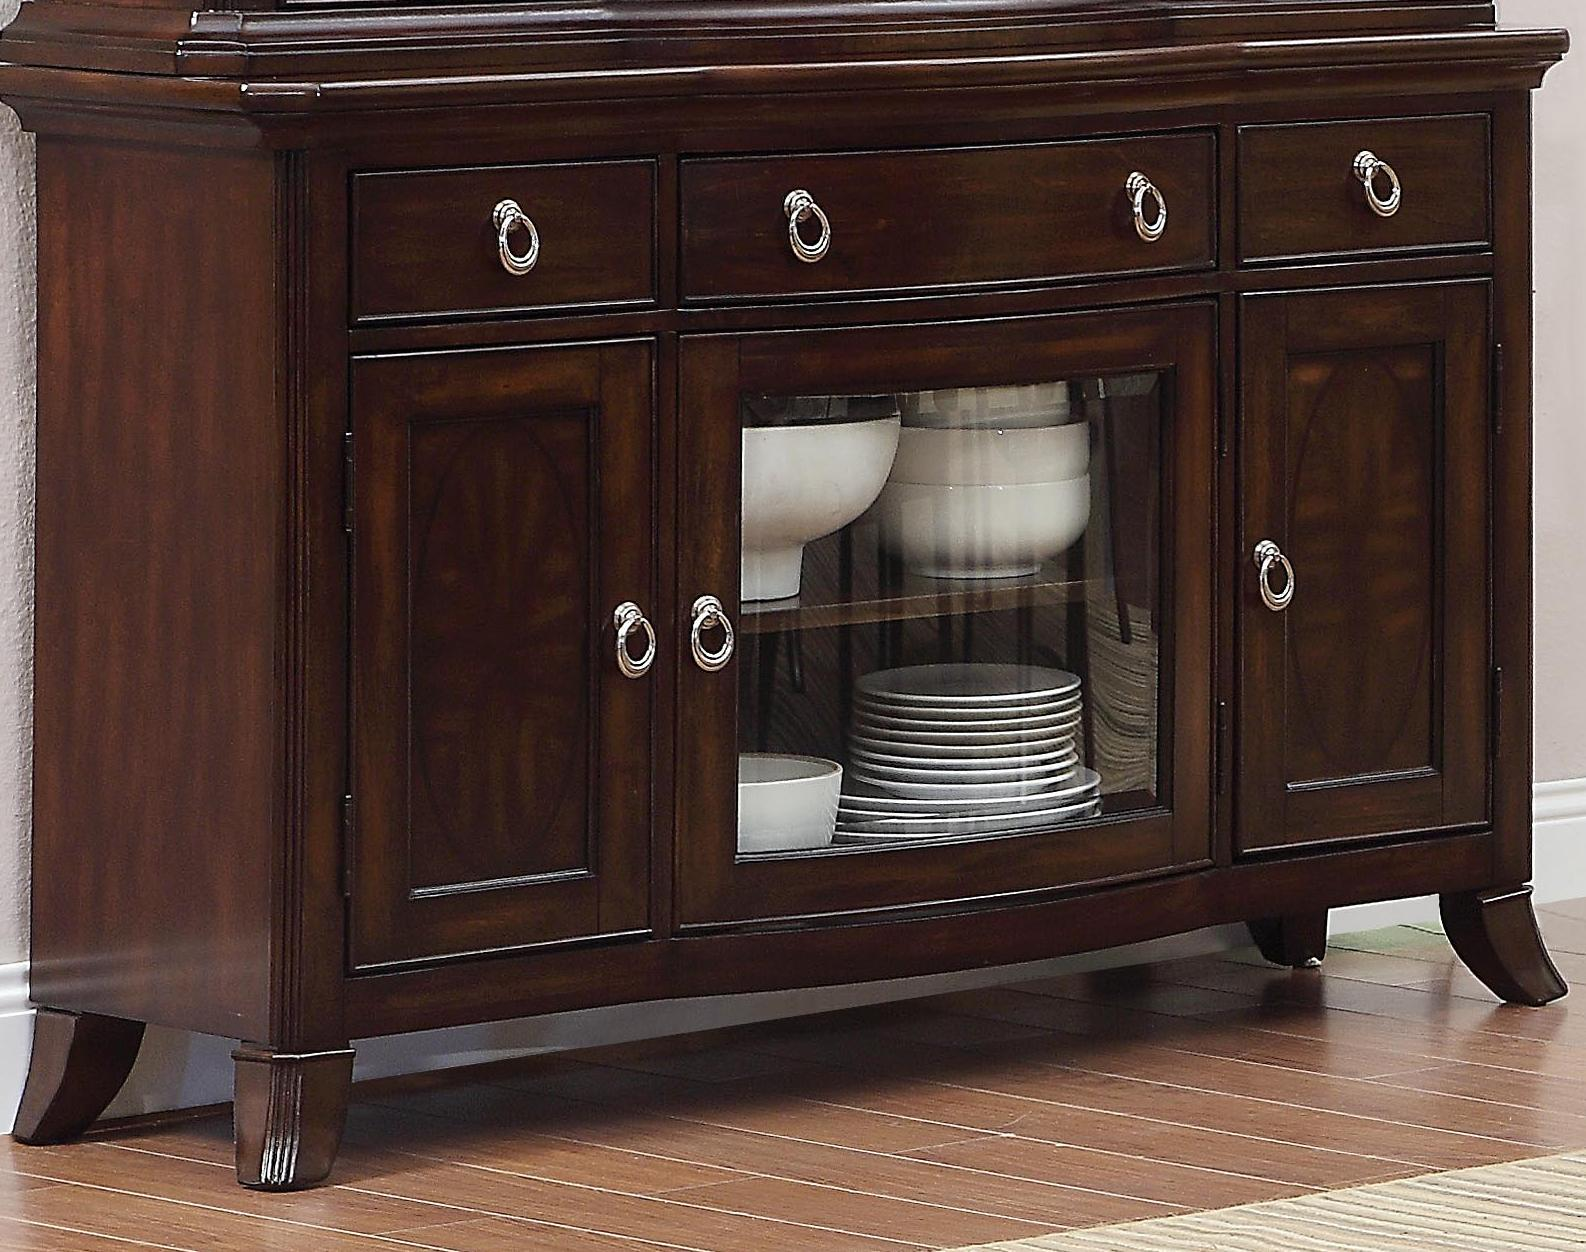 Homelegance Keegan Sideboard - Item Number: 2546-30